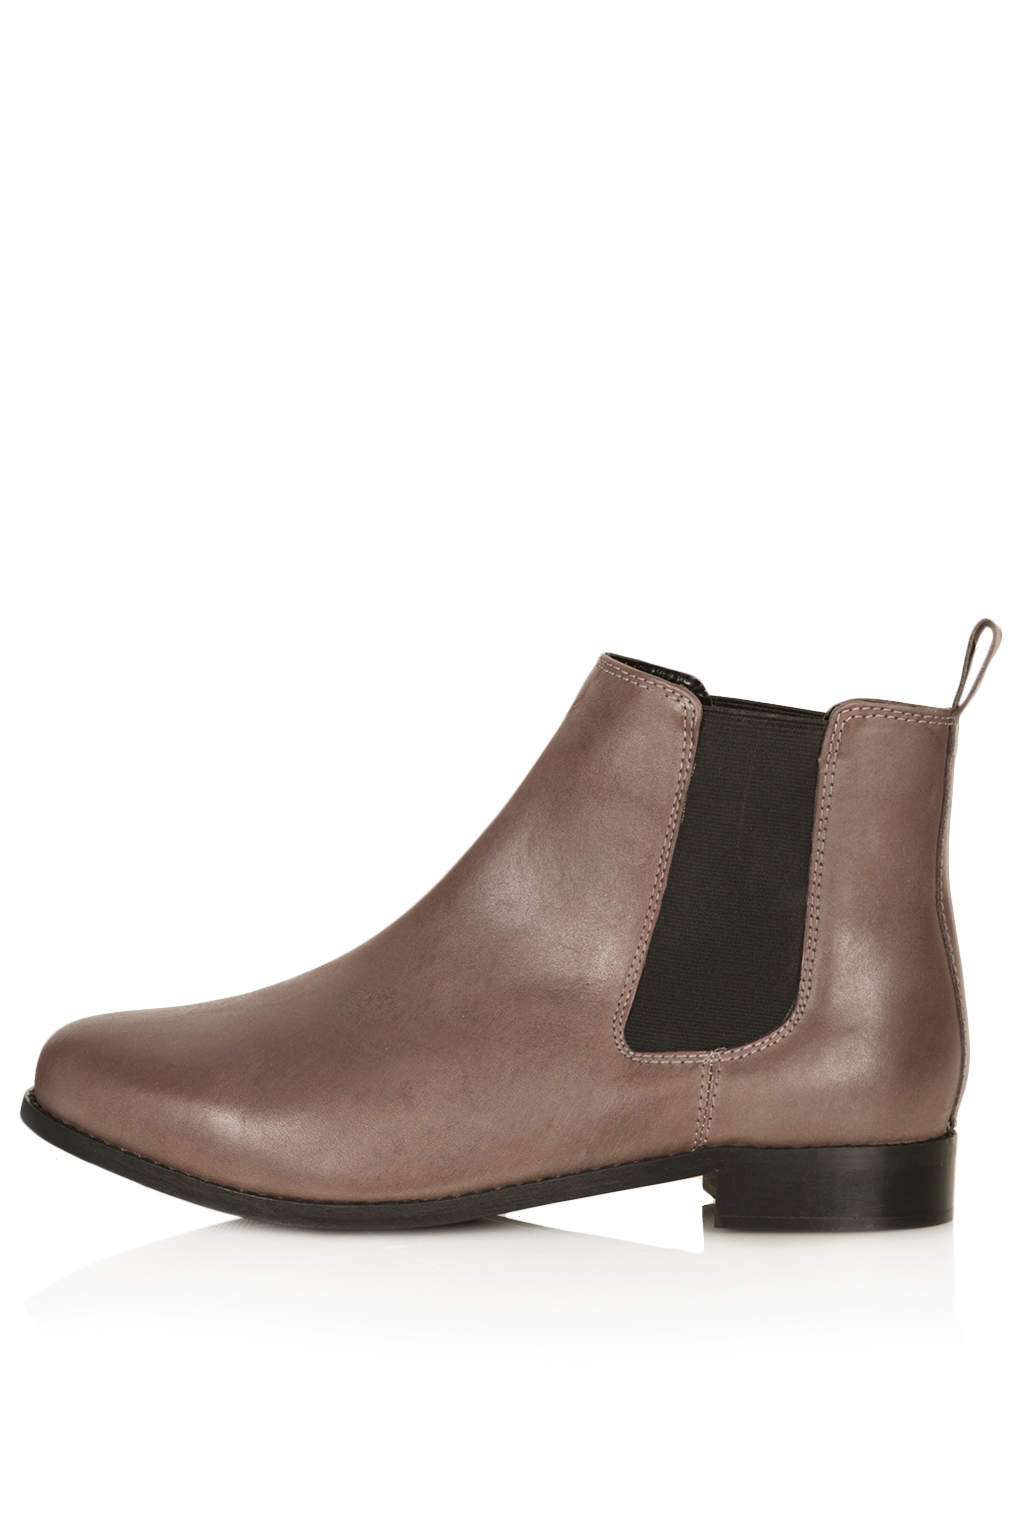 Shop for Chelsea Boots online at Macy's. Whether you're looking for suede boots or black chelsea boots, we've got them all. FREE shipping with $99 purchase.